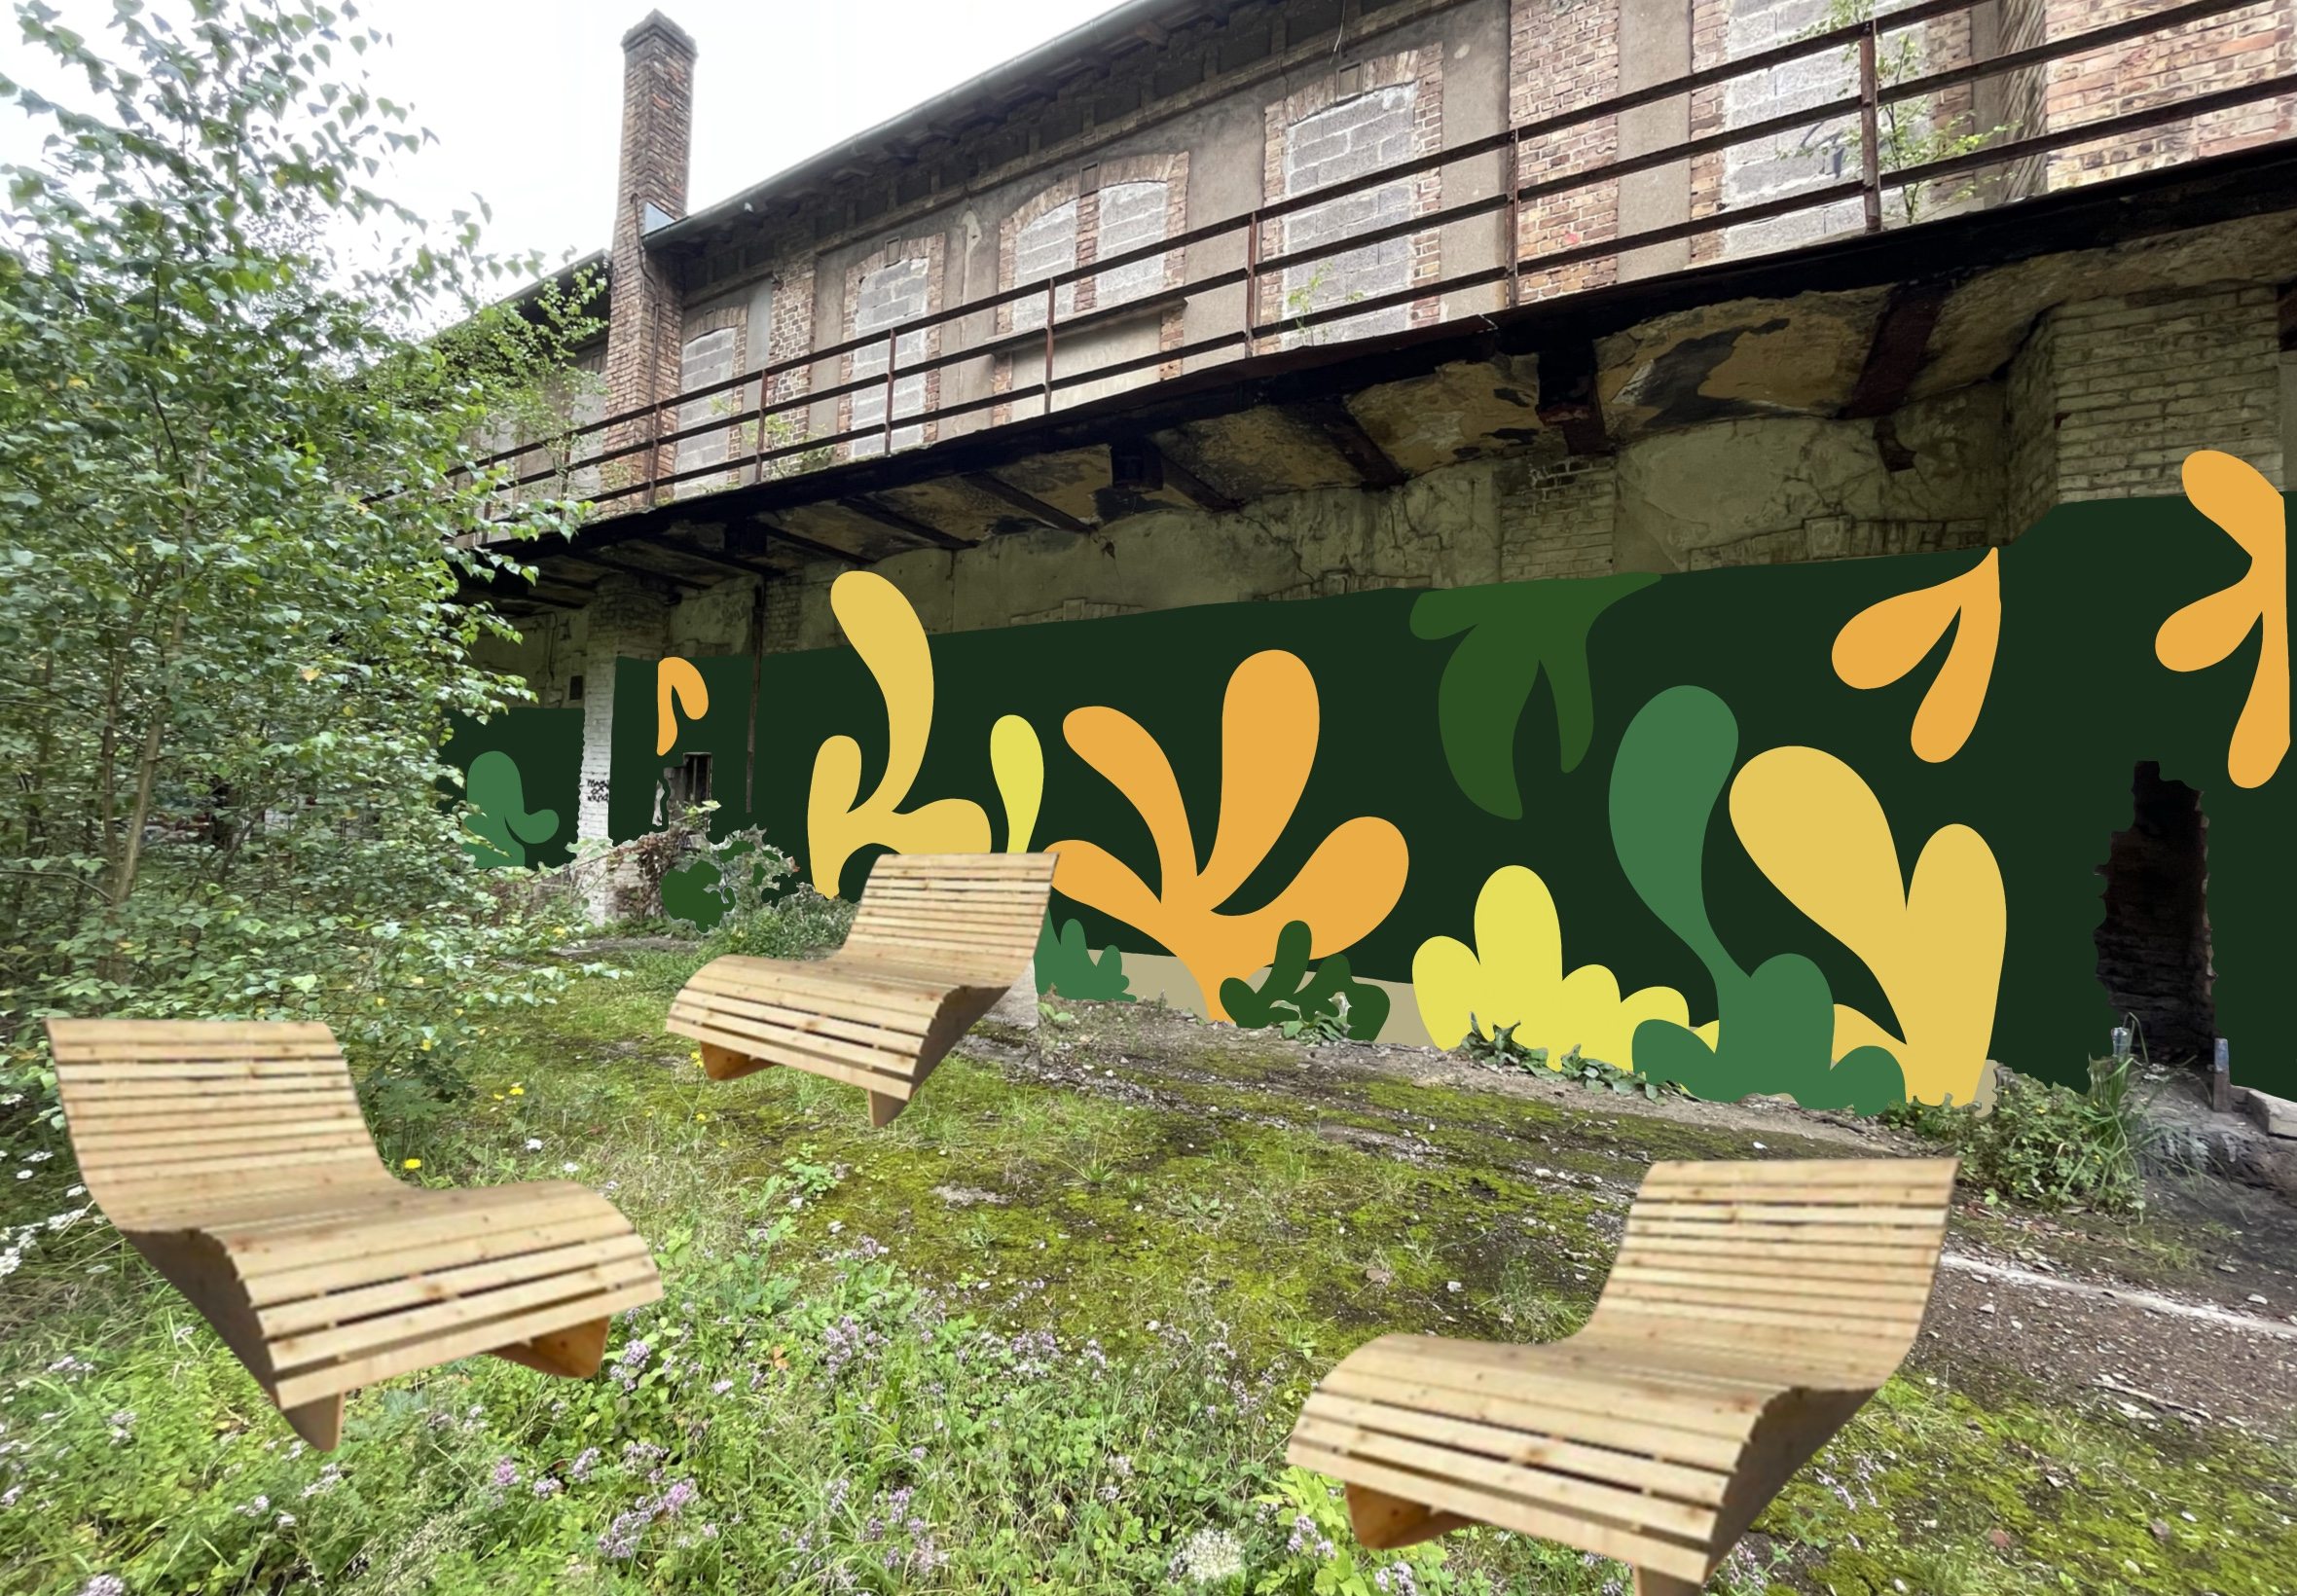 Botanical Mural Paint for Espace Tillebierg in Collaboration with Charly Krau & Wood